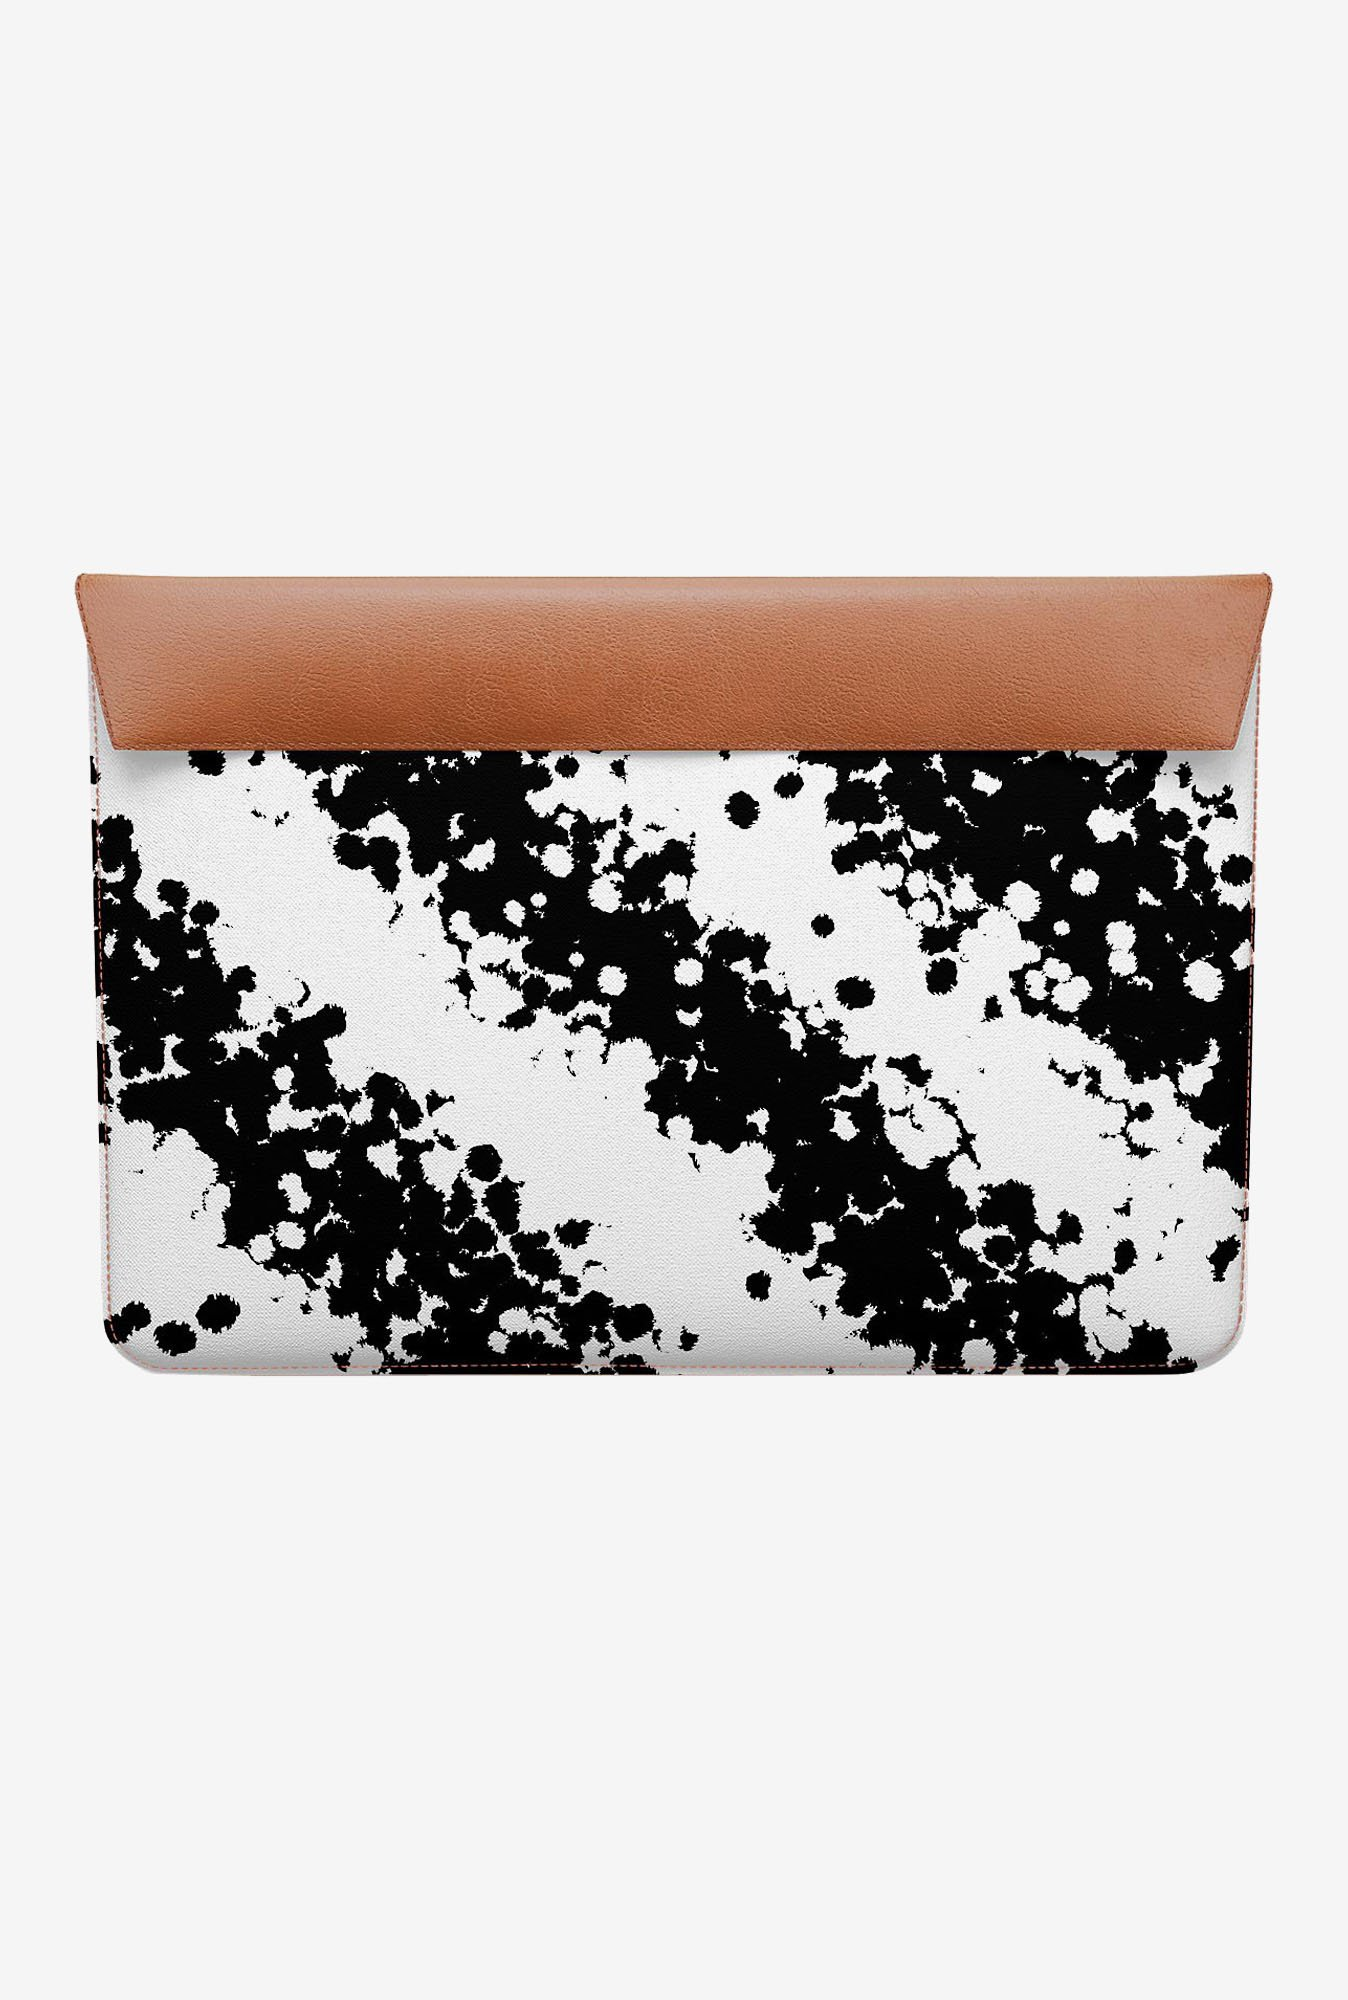 DailyObjects Polka Stripes MacBook Air 11 Envelope Sleeve